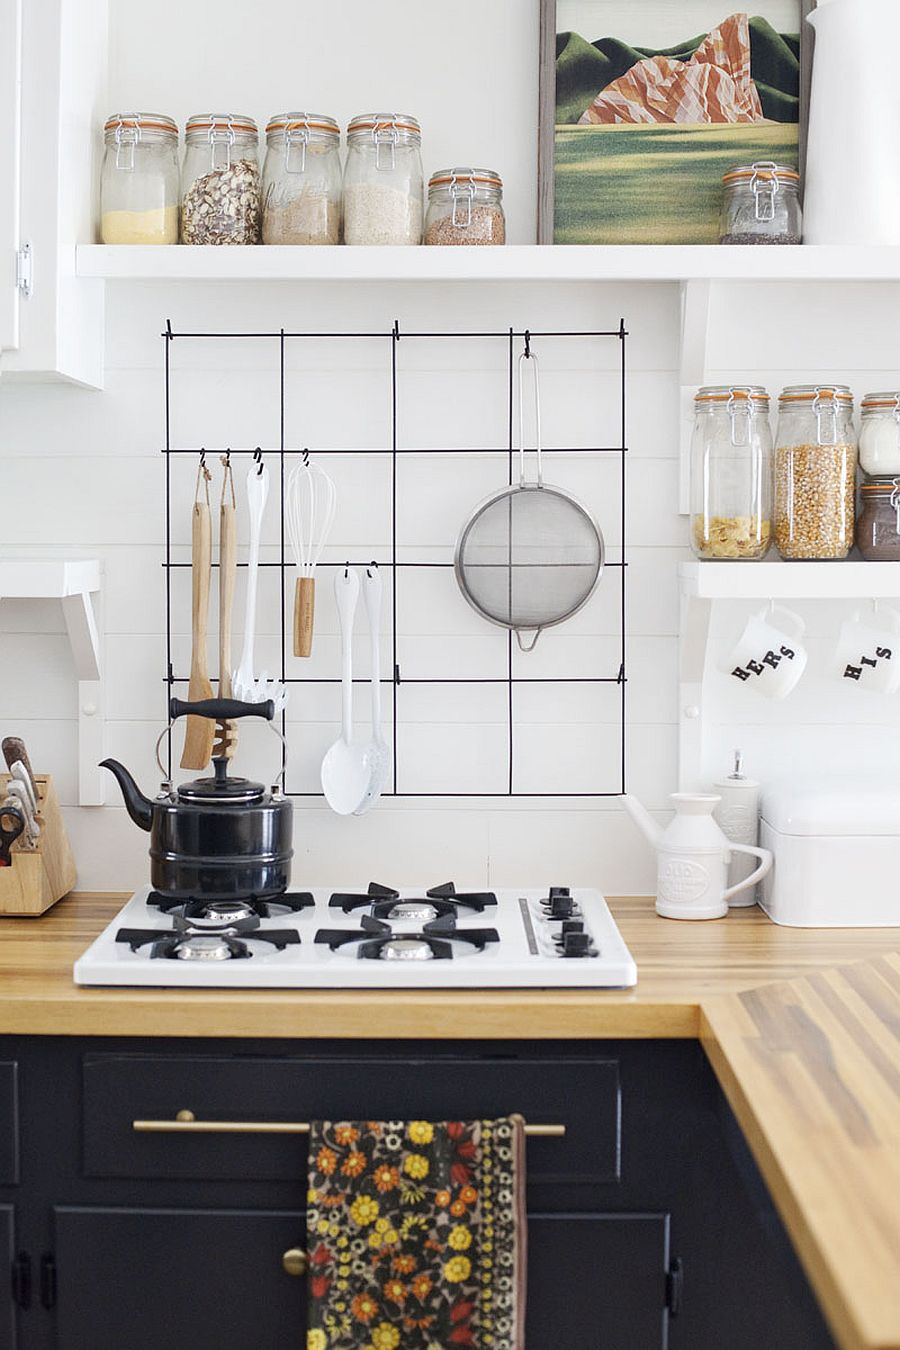 A simple wiry frame can transform the kitchen by creating a more organized countertop